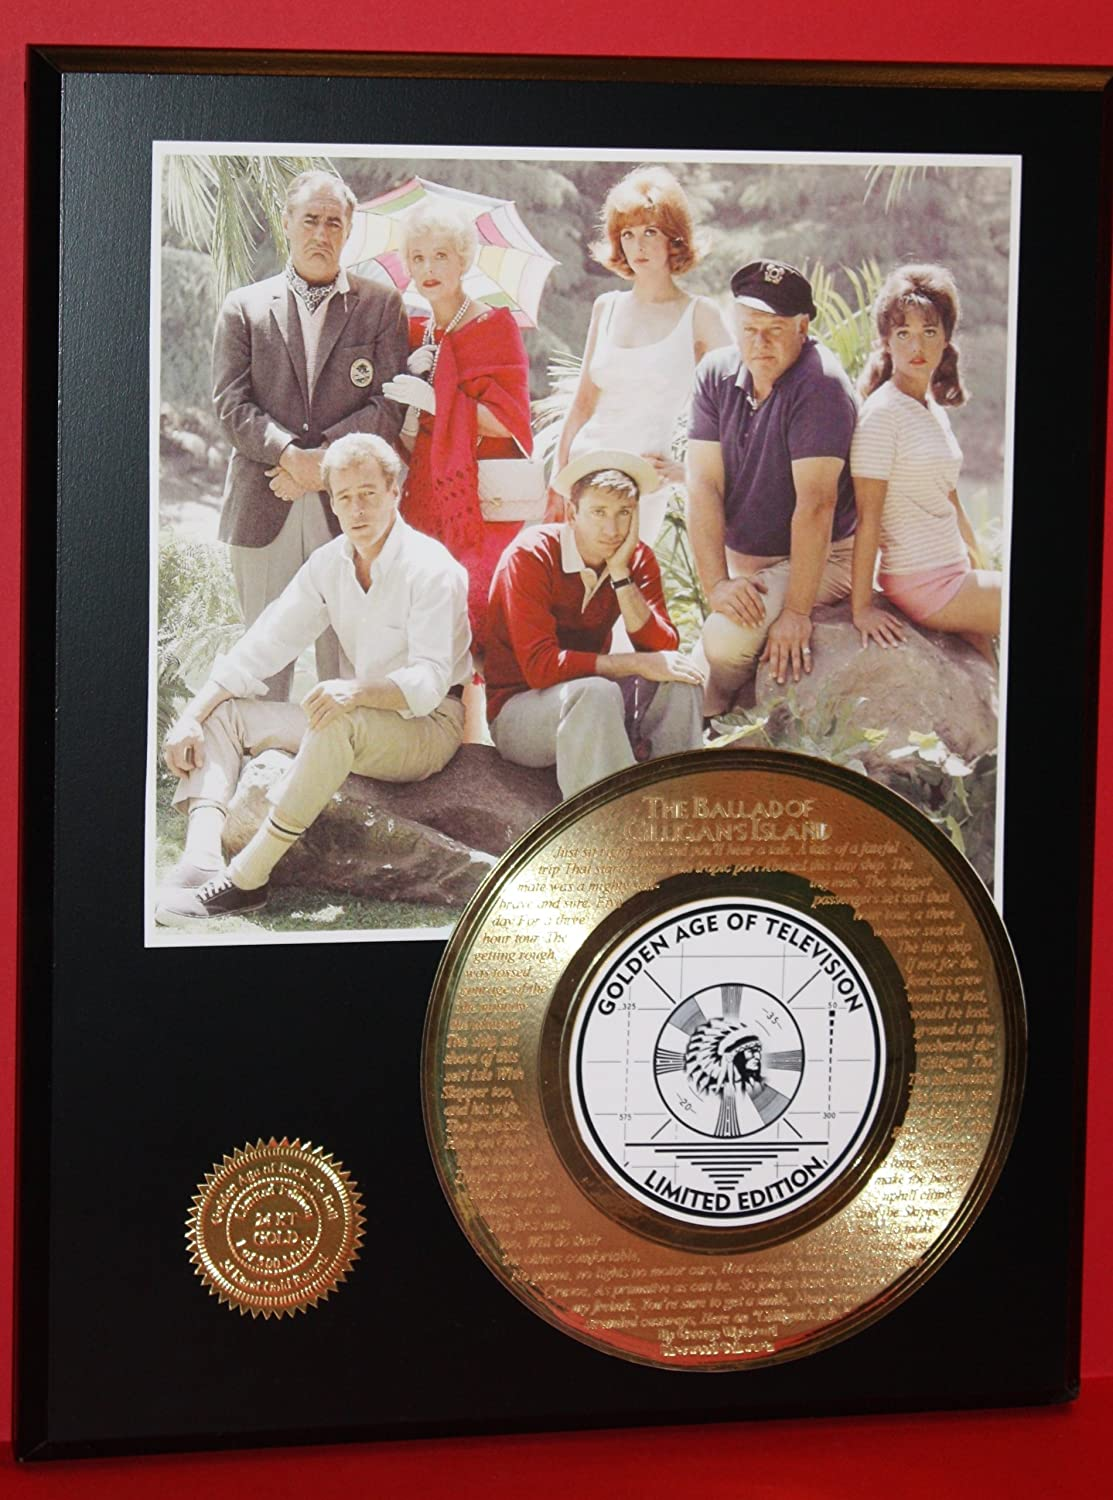 Gilligan'S Island Gold Record Rare Limited Edition Laser Etched W/Lyrics Gold Record Outlet